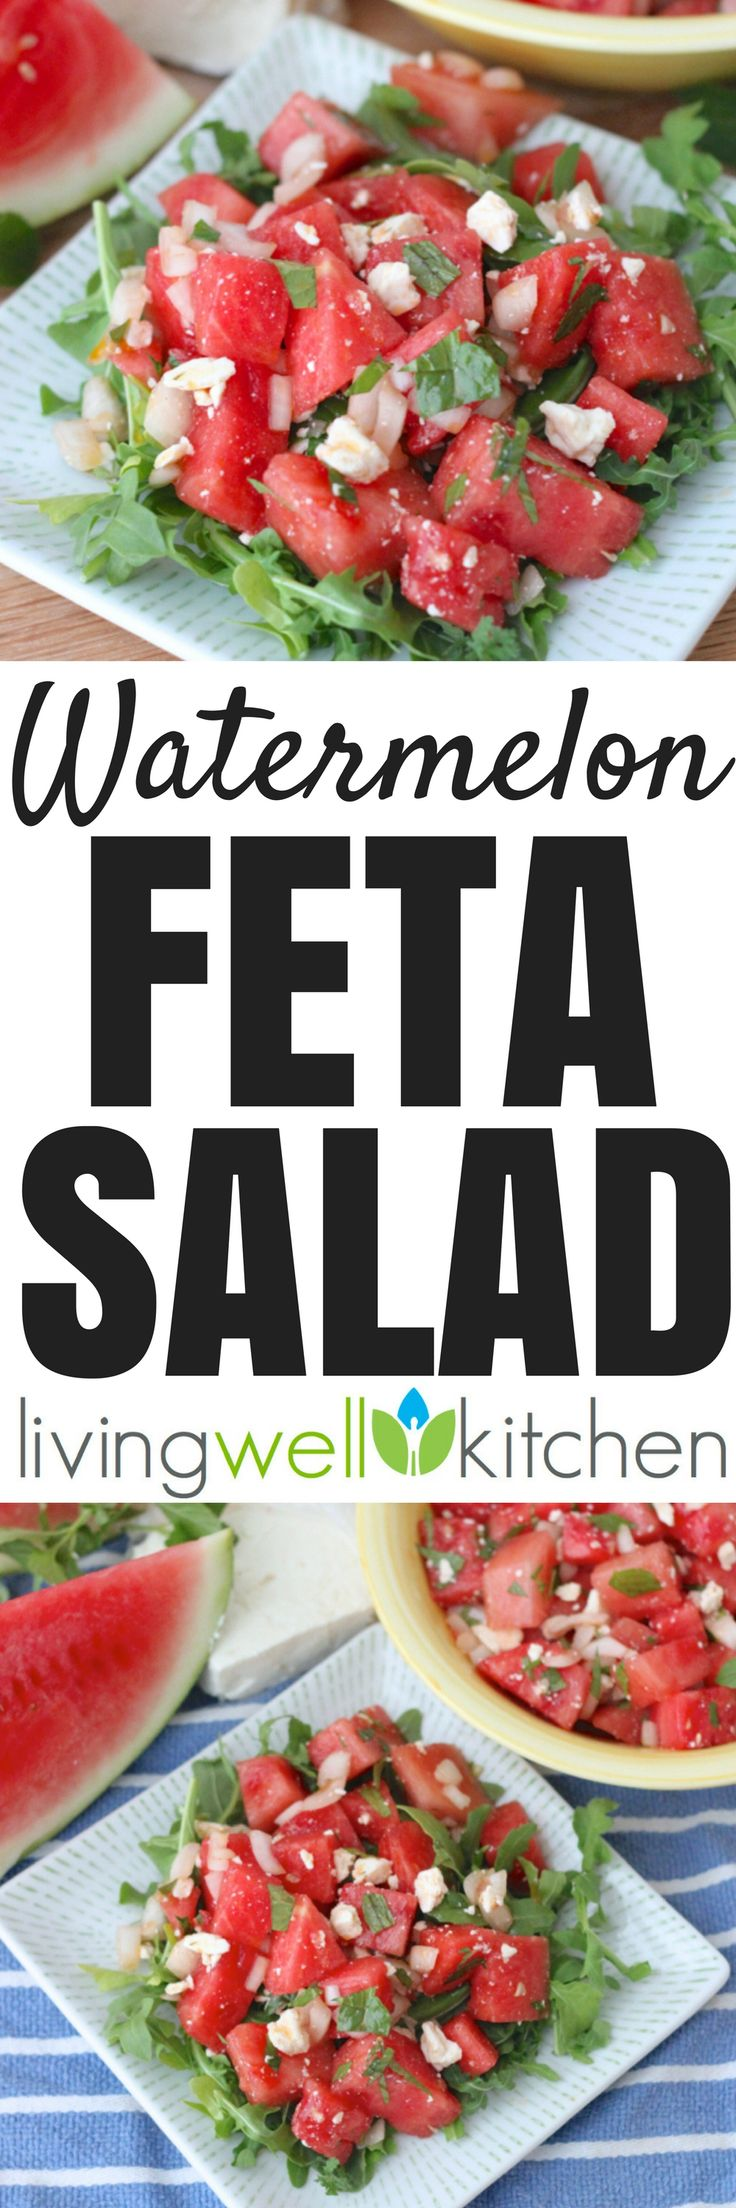 Watermelon Feta Salad from @memeinge is the perfect summer salad with spicy arugula, sweet watermelon and mint, tangy vinegar, and salty feta. Makes a lot and is great turned into a main meal with extra lettuce and added chicken or chickpeas. Gluten free, vegetarian recipe